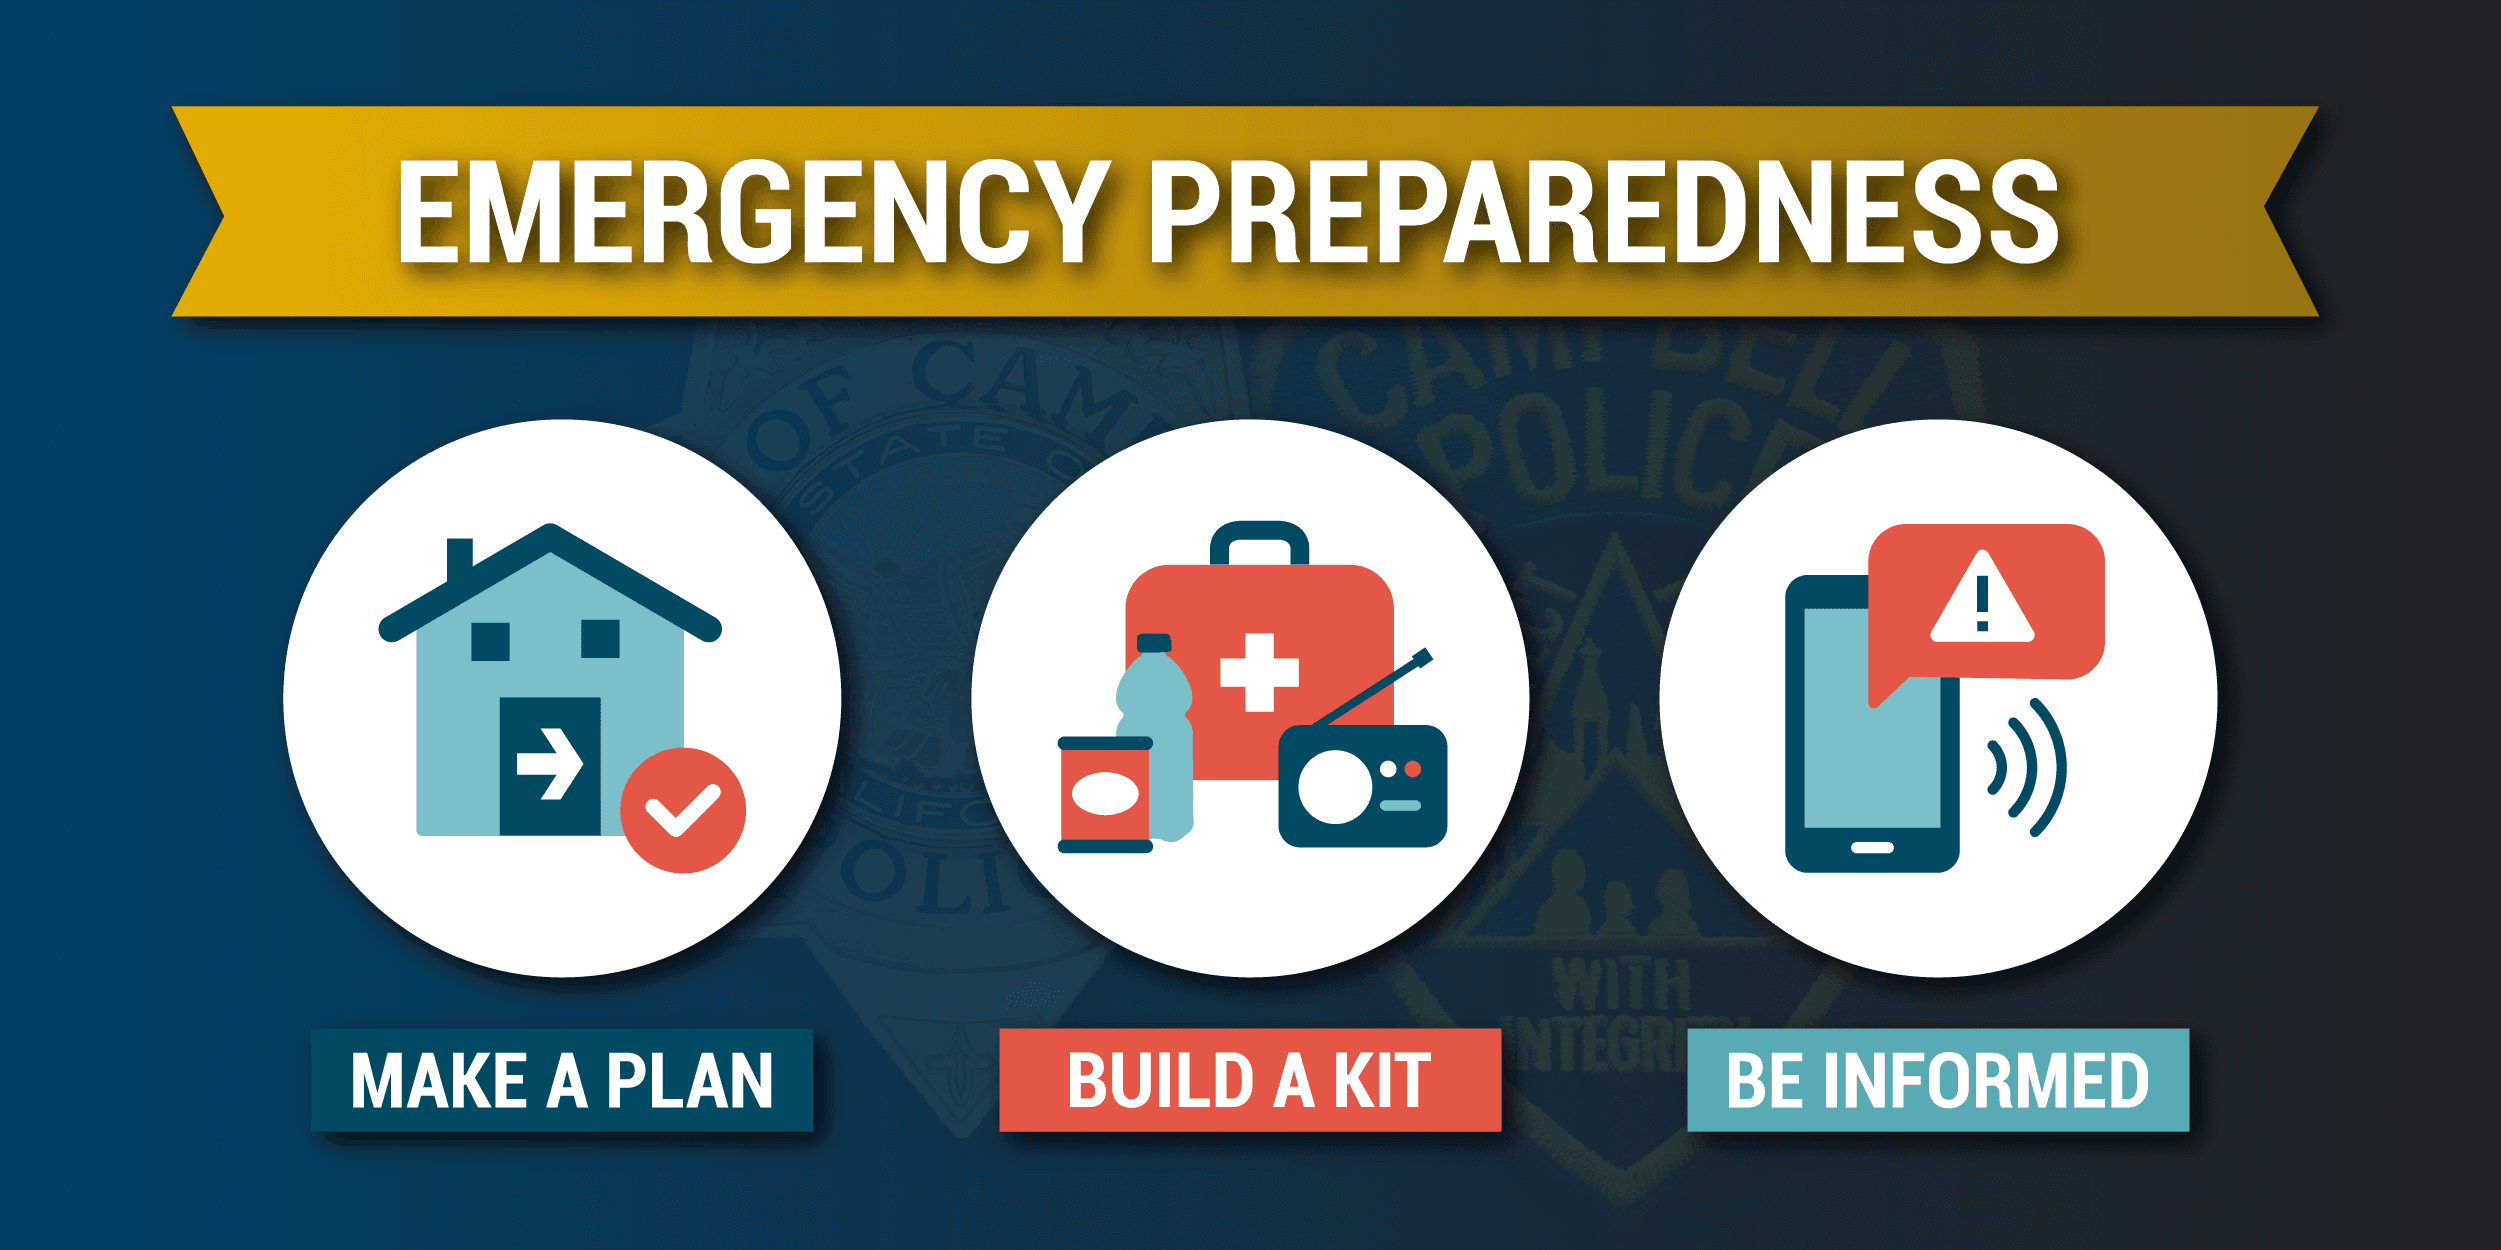 Emergency Preparedness: make a plan, build a kit, be informed.